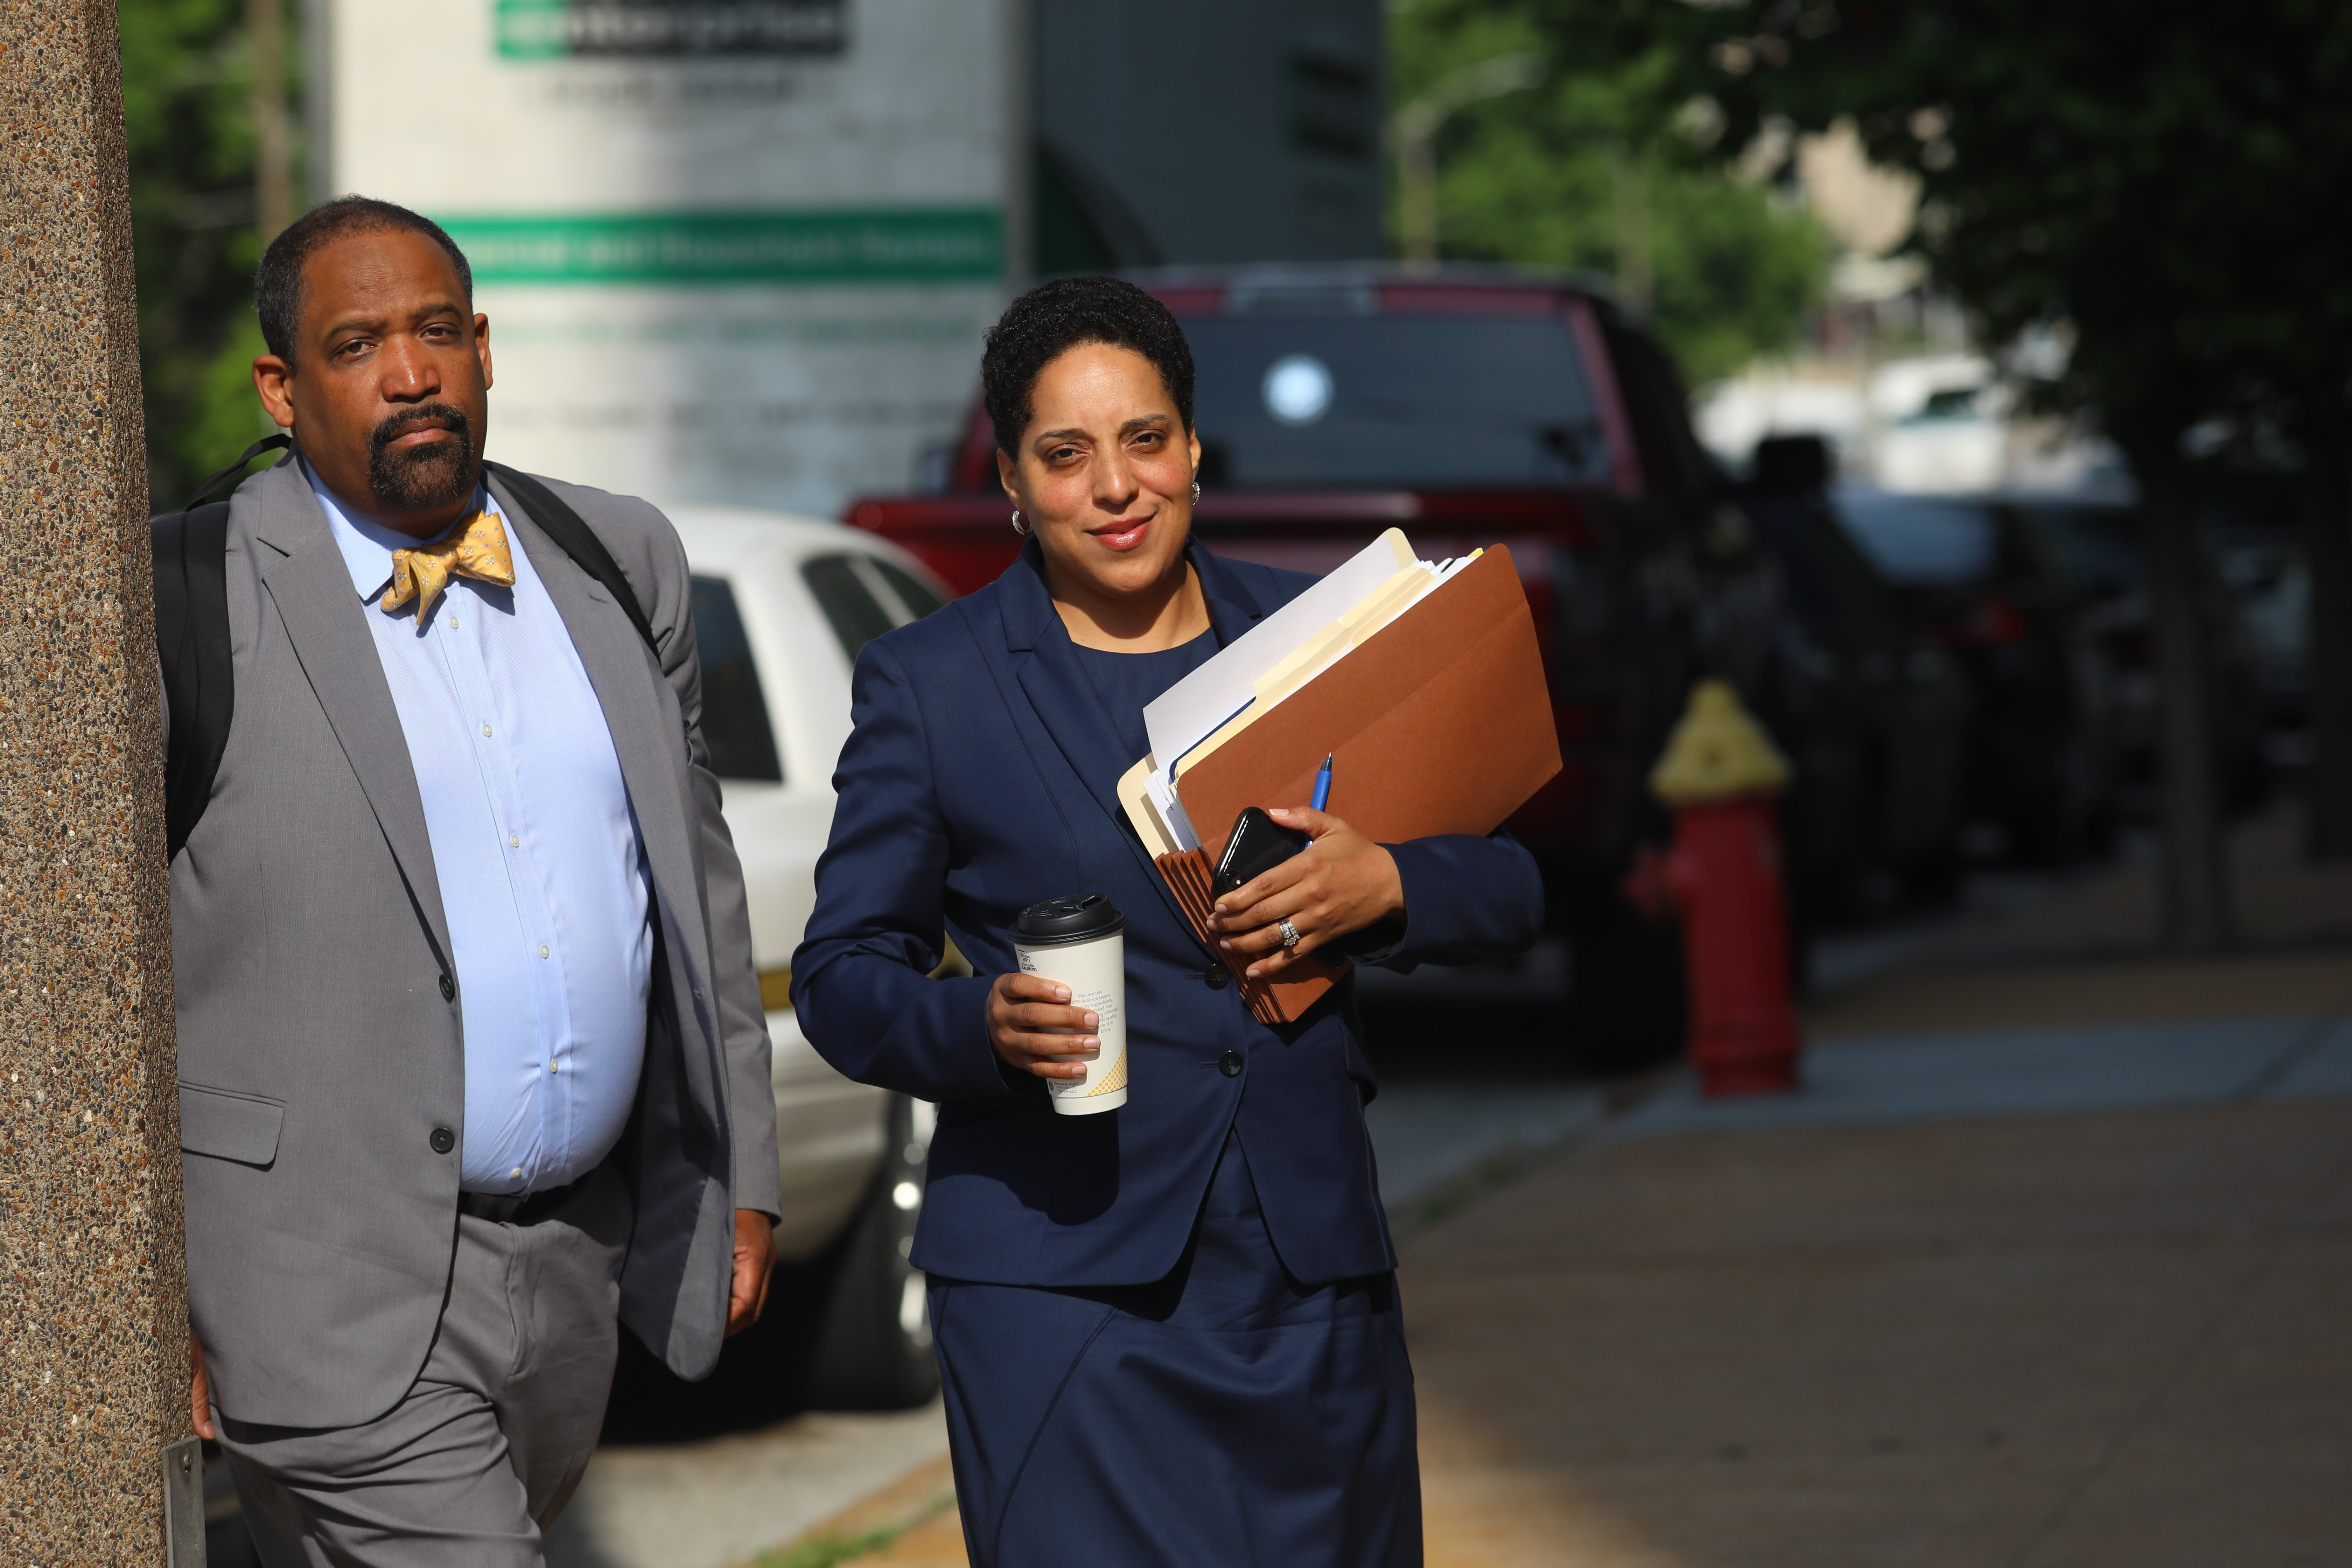 t. Louis Circuit Attorney Kim Gardner, right, and Ronald Sullivan, a Harvard law professor, arrive at the Civil Courts building for the third day of jury selection in Missouri Gov. Eric Greitens' invasion of privacy trial, Monday, May 14, 2018, in St. Louis. Prosecutors on Monday abruptly dropped the invasion-of-privacy charge against Greitens but said they still hope to pursue a case against him for allegedly taking a revealing photo of a woman with whom he has acknowledged having an affair. The surprise move came after the judge had granted a request by Greitens' lawyers to call Gardner as a witness for the defense. (Christian Gooden/St. Louis Post-Dispatch via AP)